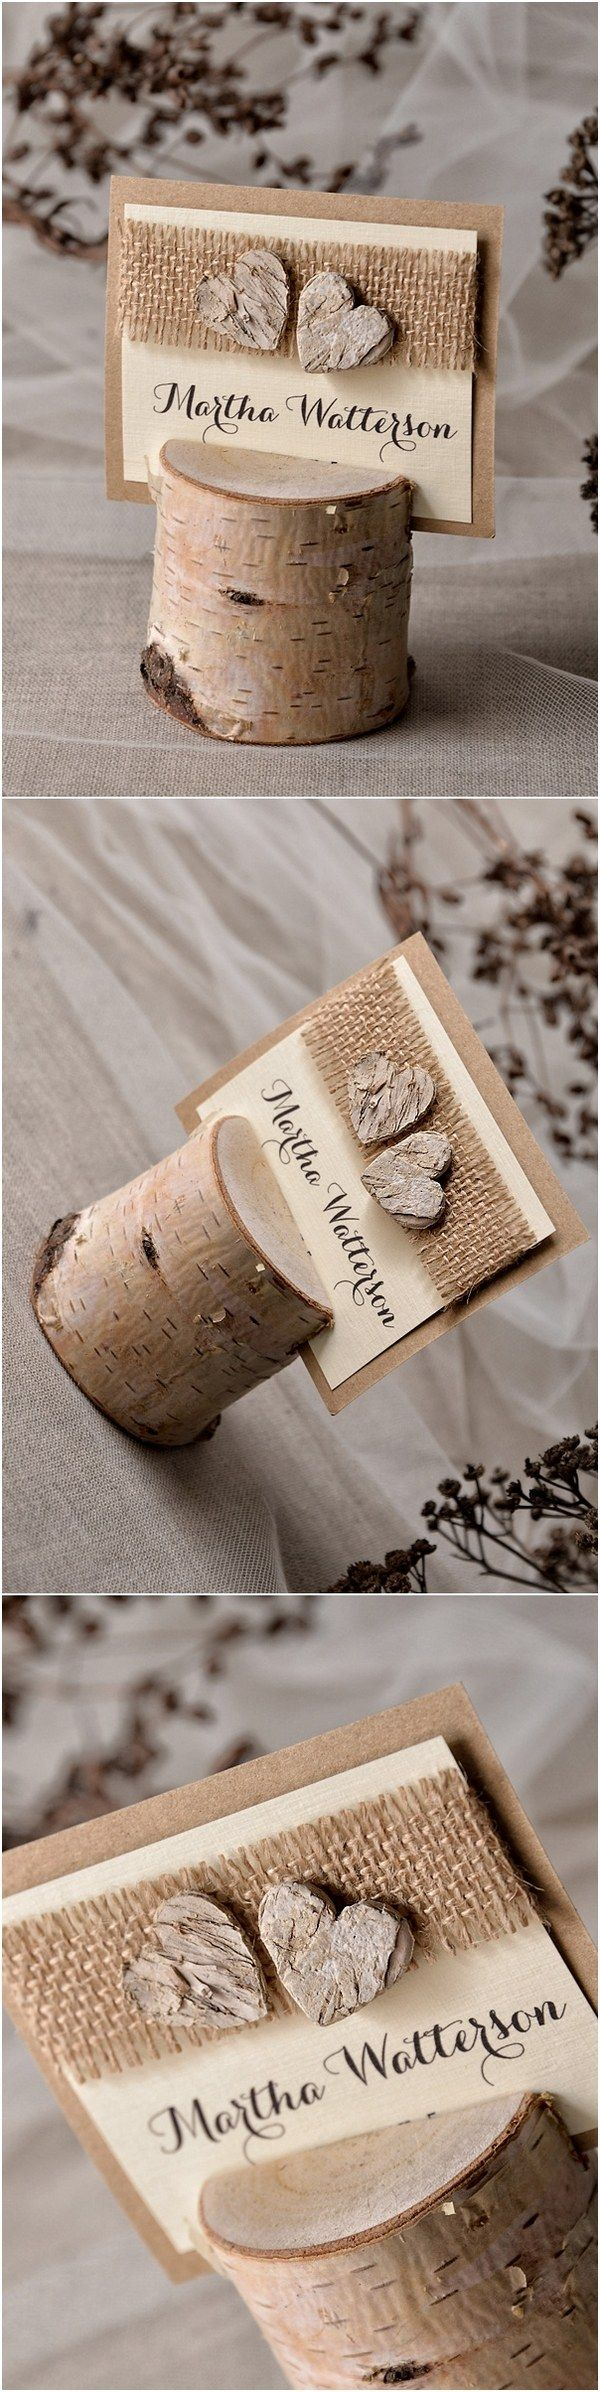 Rustic country burlap and birch real wood wedding place cards #countrywedding #rusticwedding #dpf